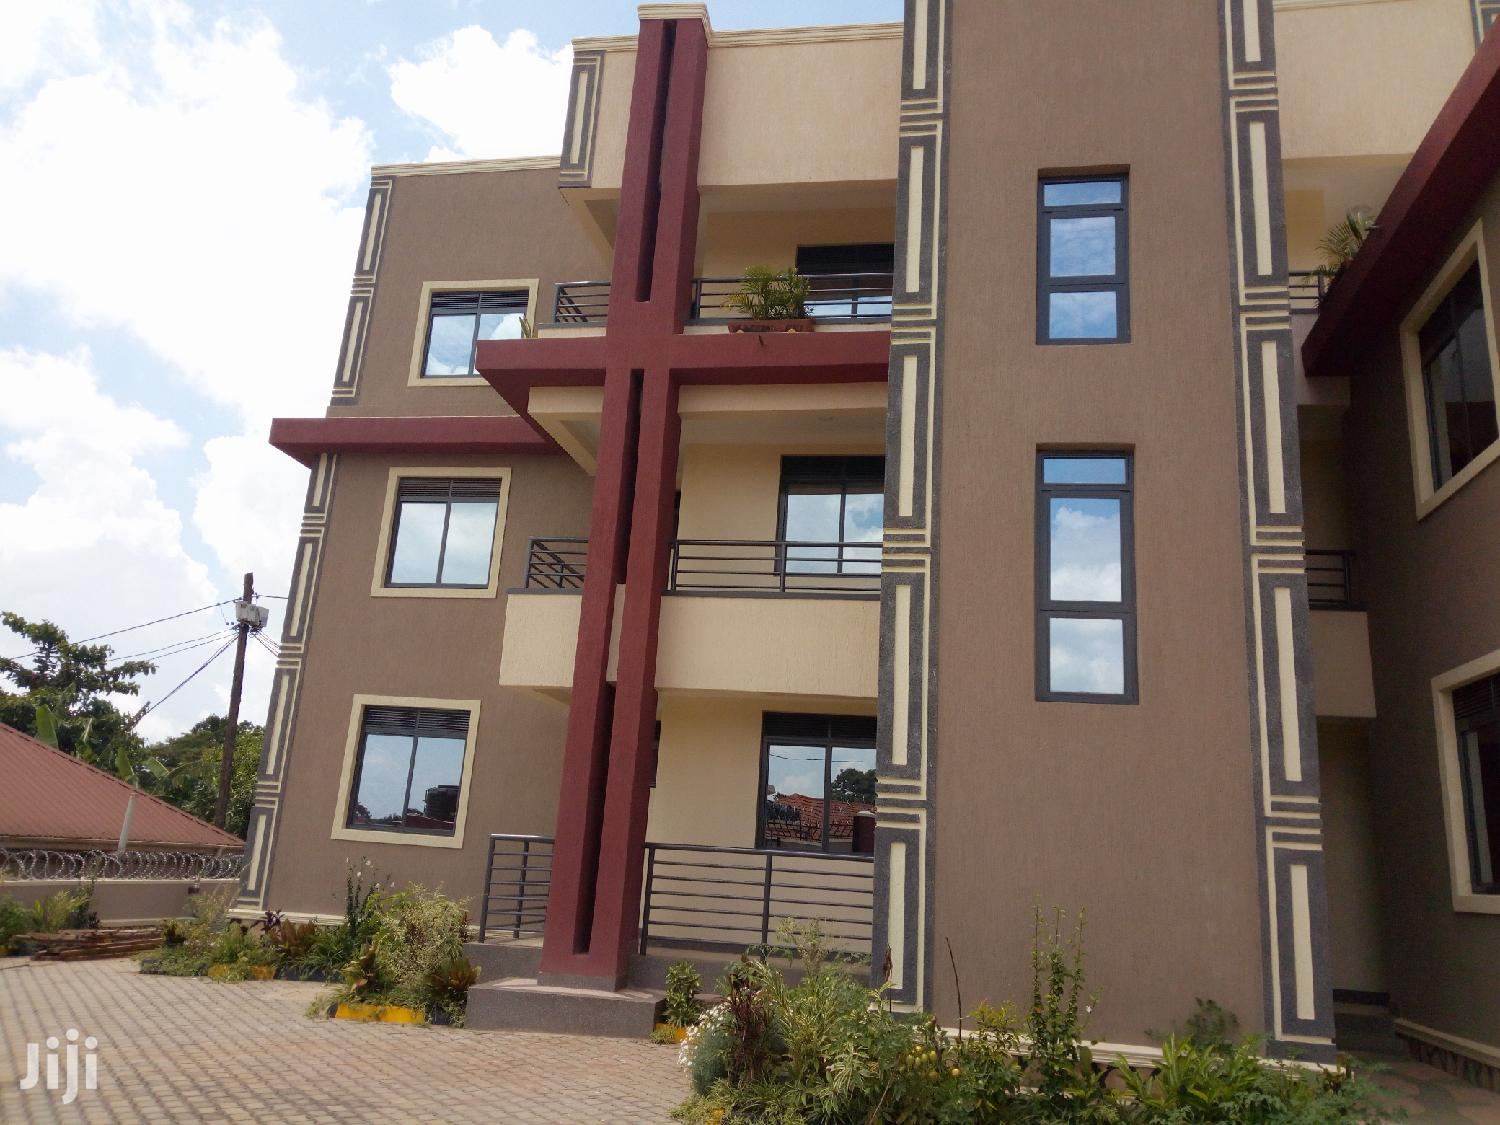 Kyanja Two Bedroom Apartment House For Rent In Kyanja